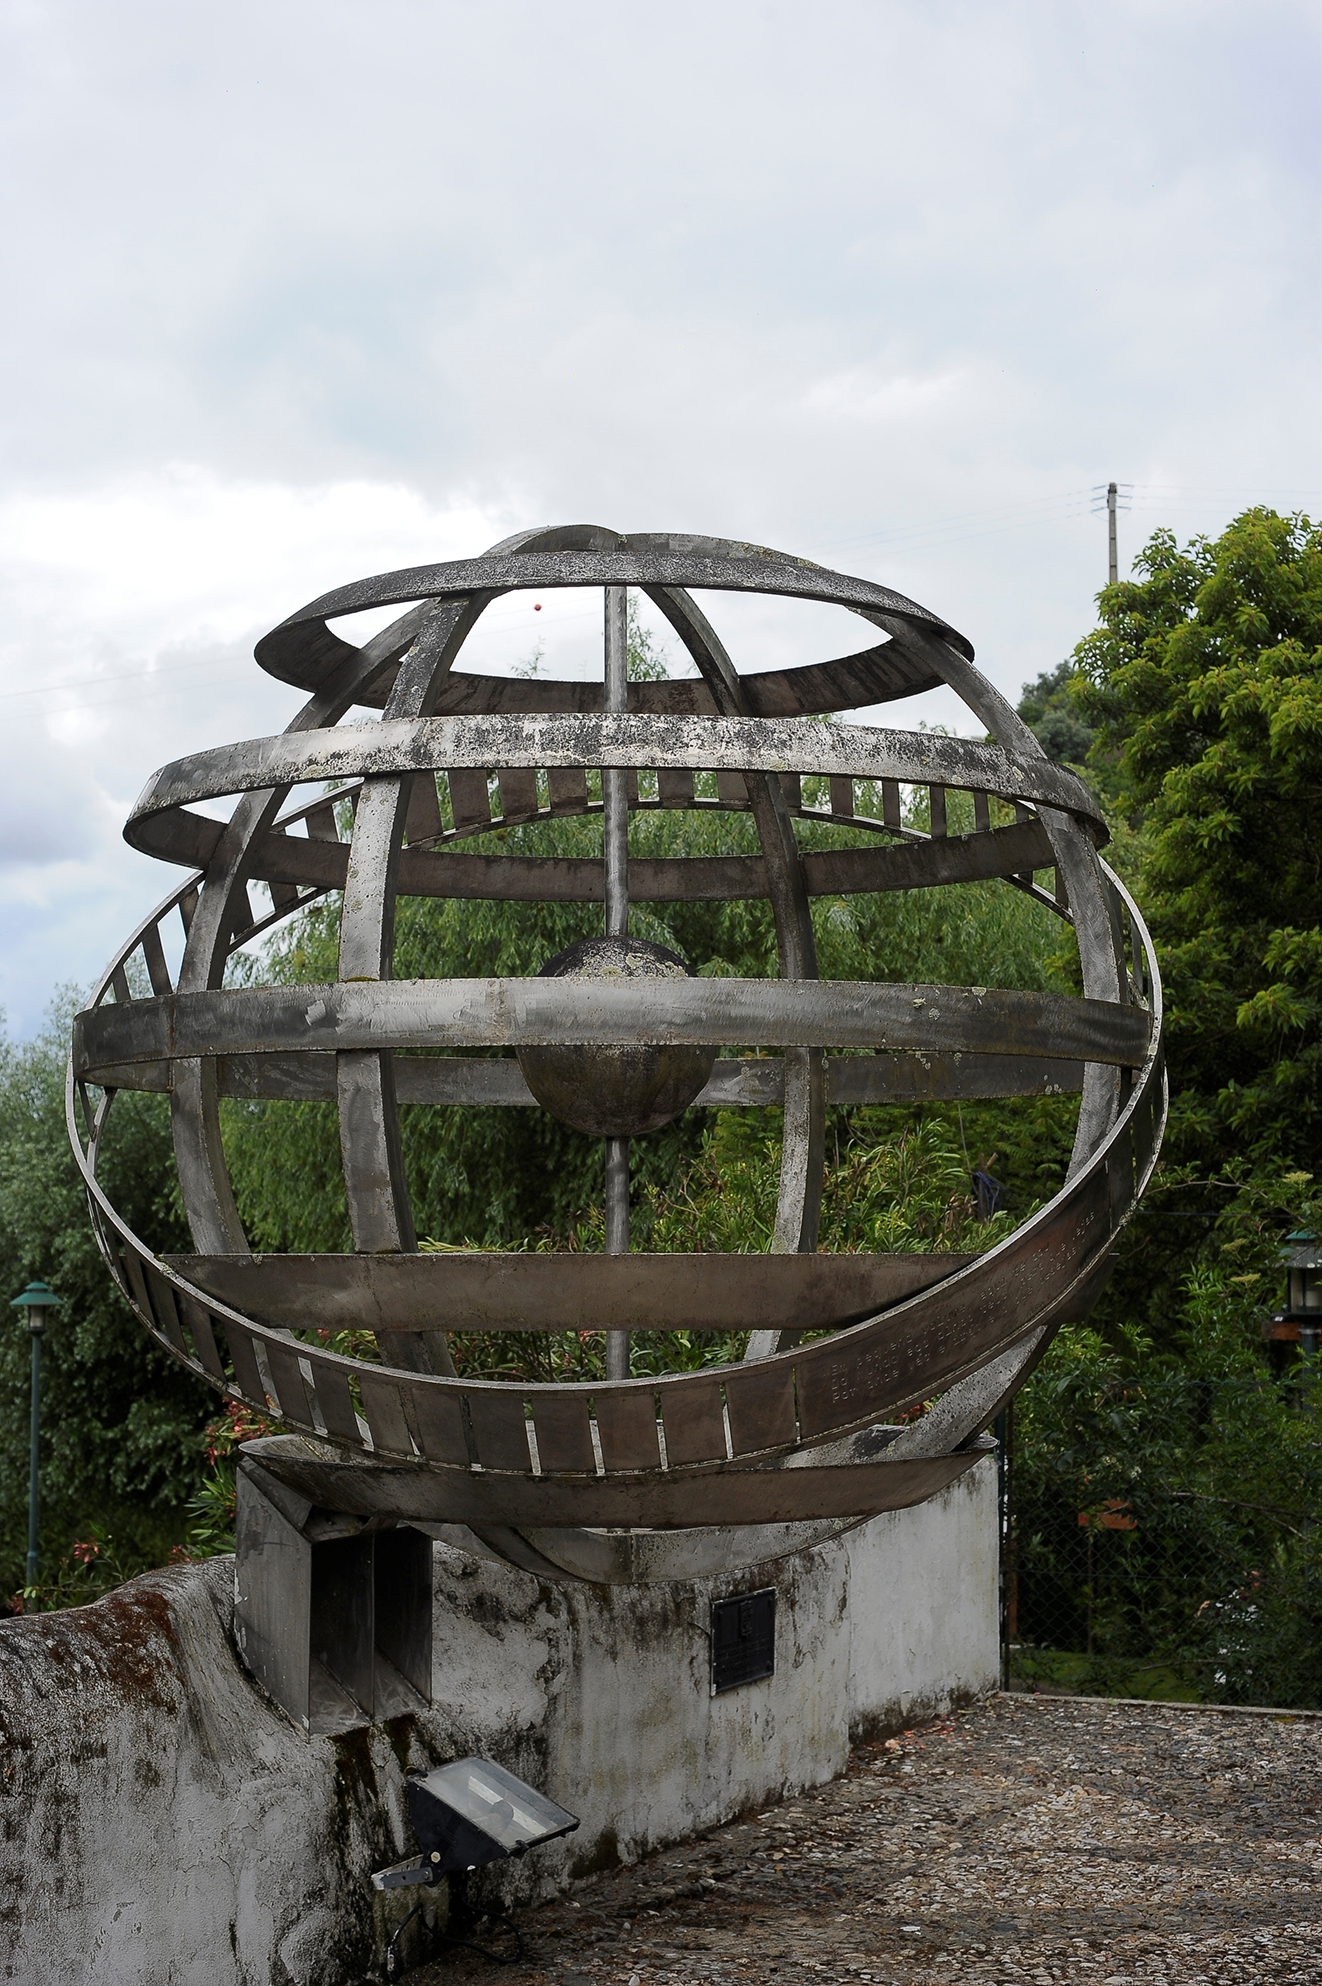 Portugal's largest armillary sphere which weight in at half a tonne, donate by the Faculty of Fine Arts in Lisbon